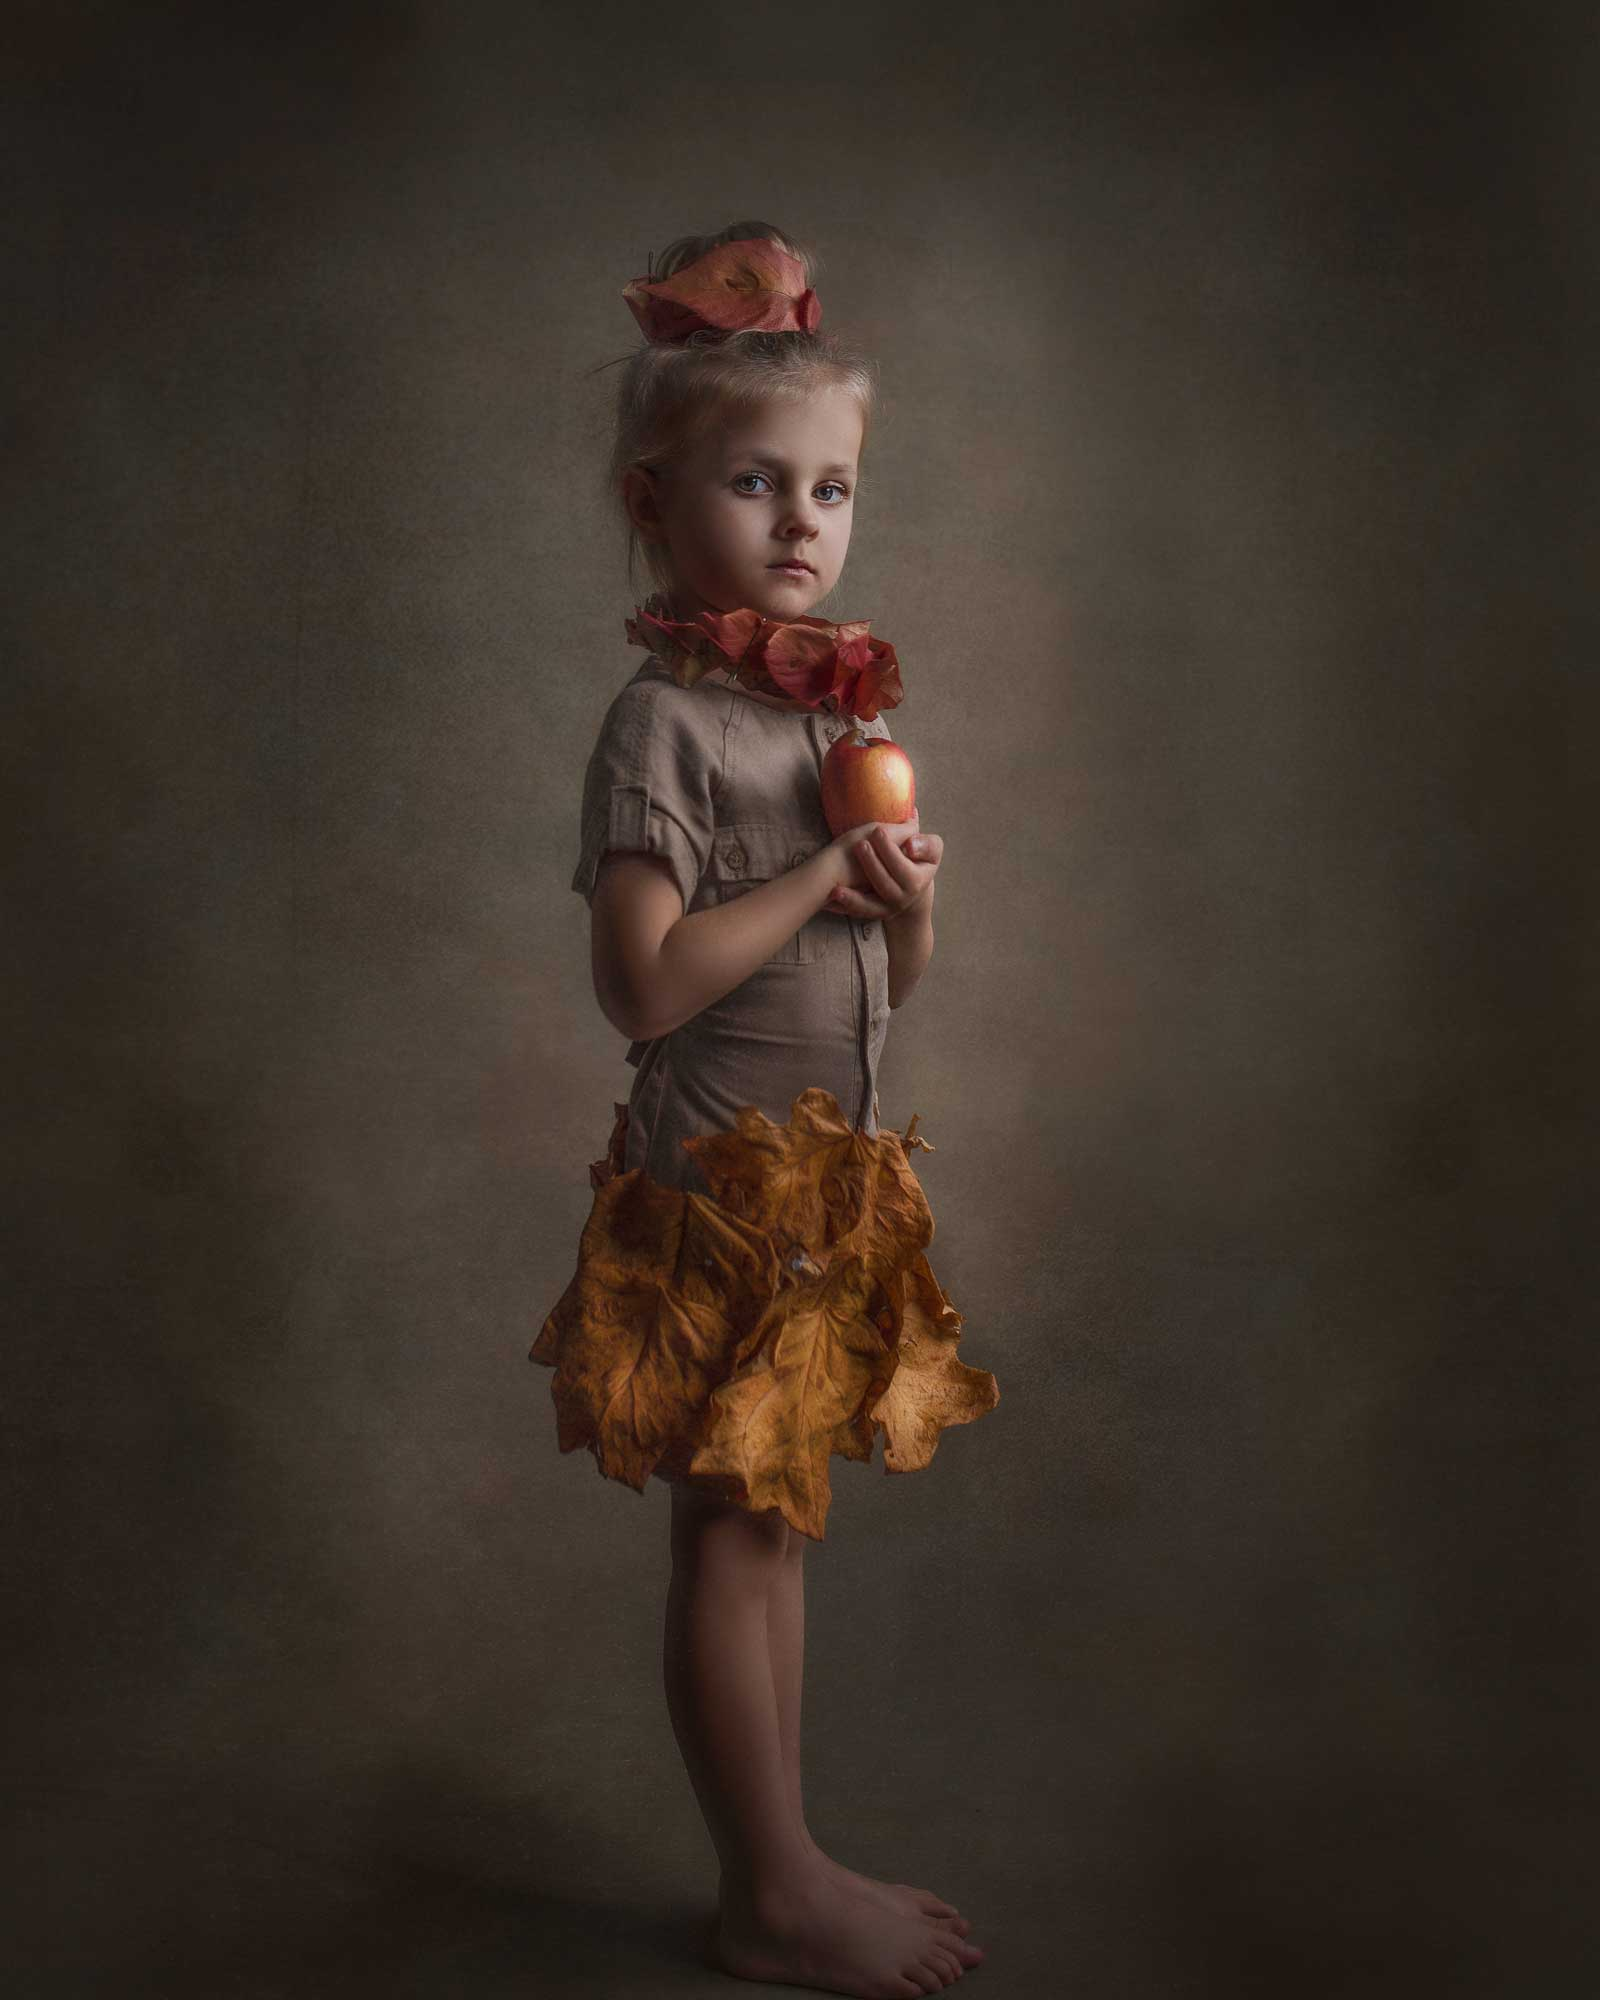 Justyna Zubow Photography - Fine Art Photography